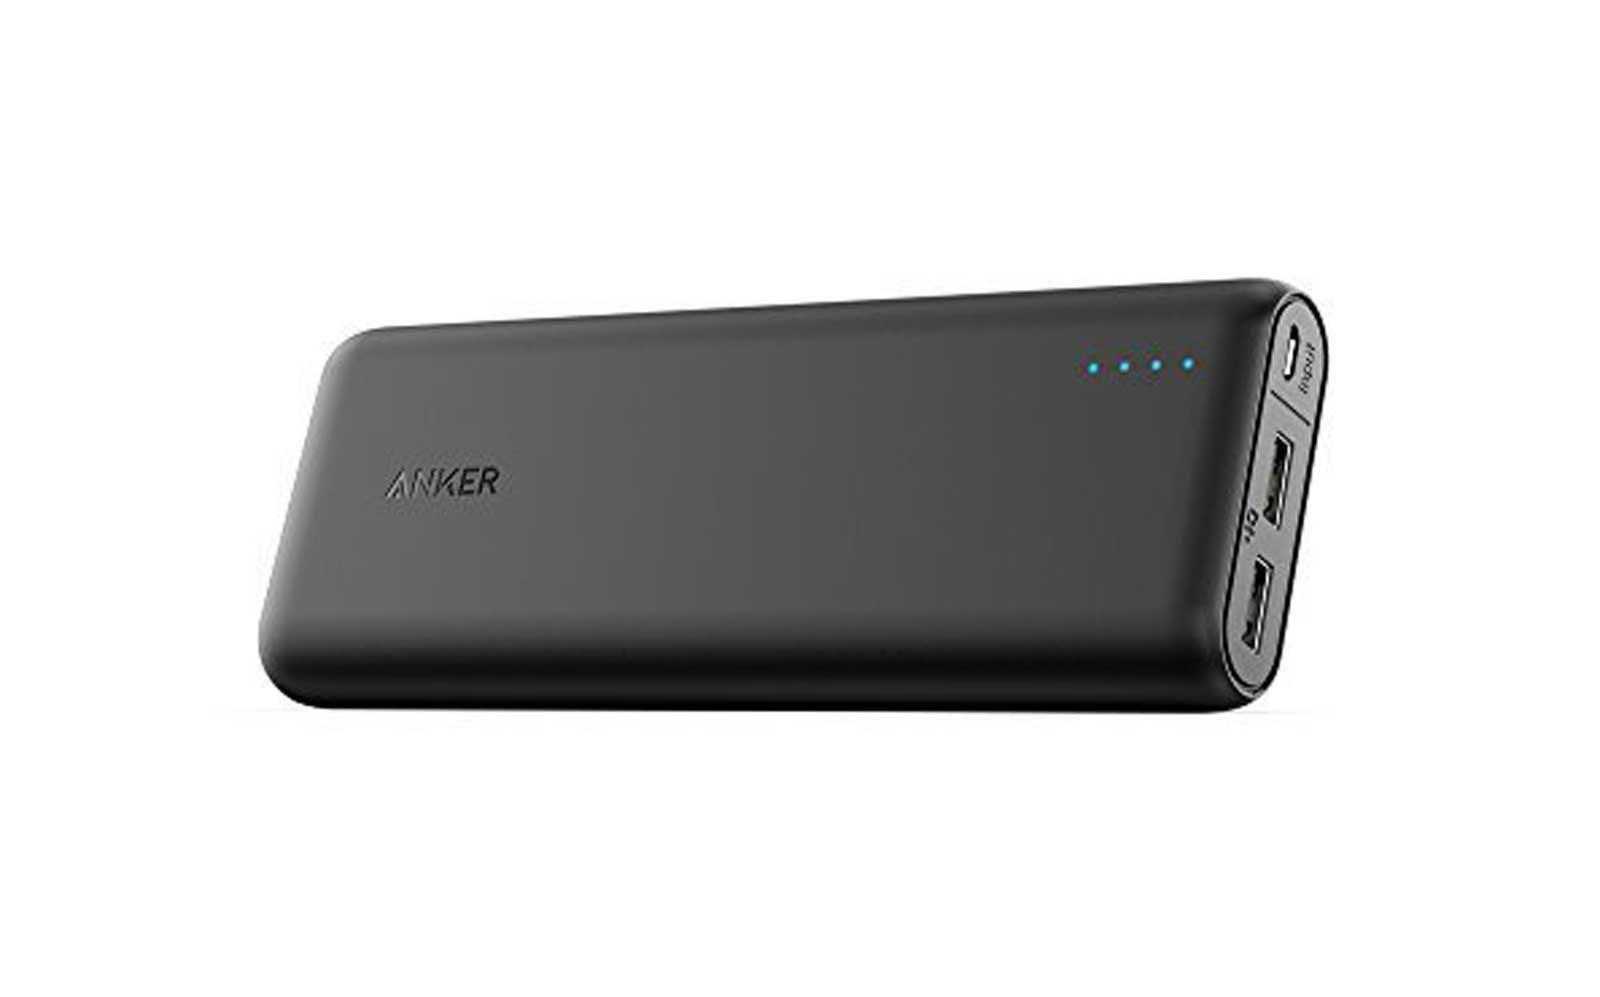 Anker 20100mAh Portable Charger